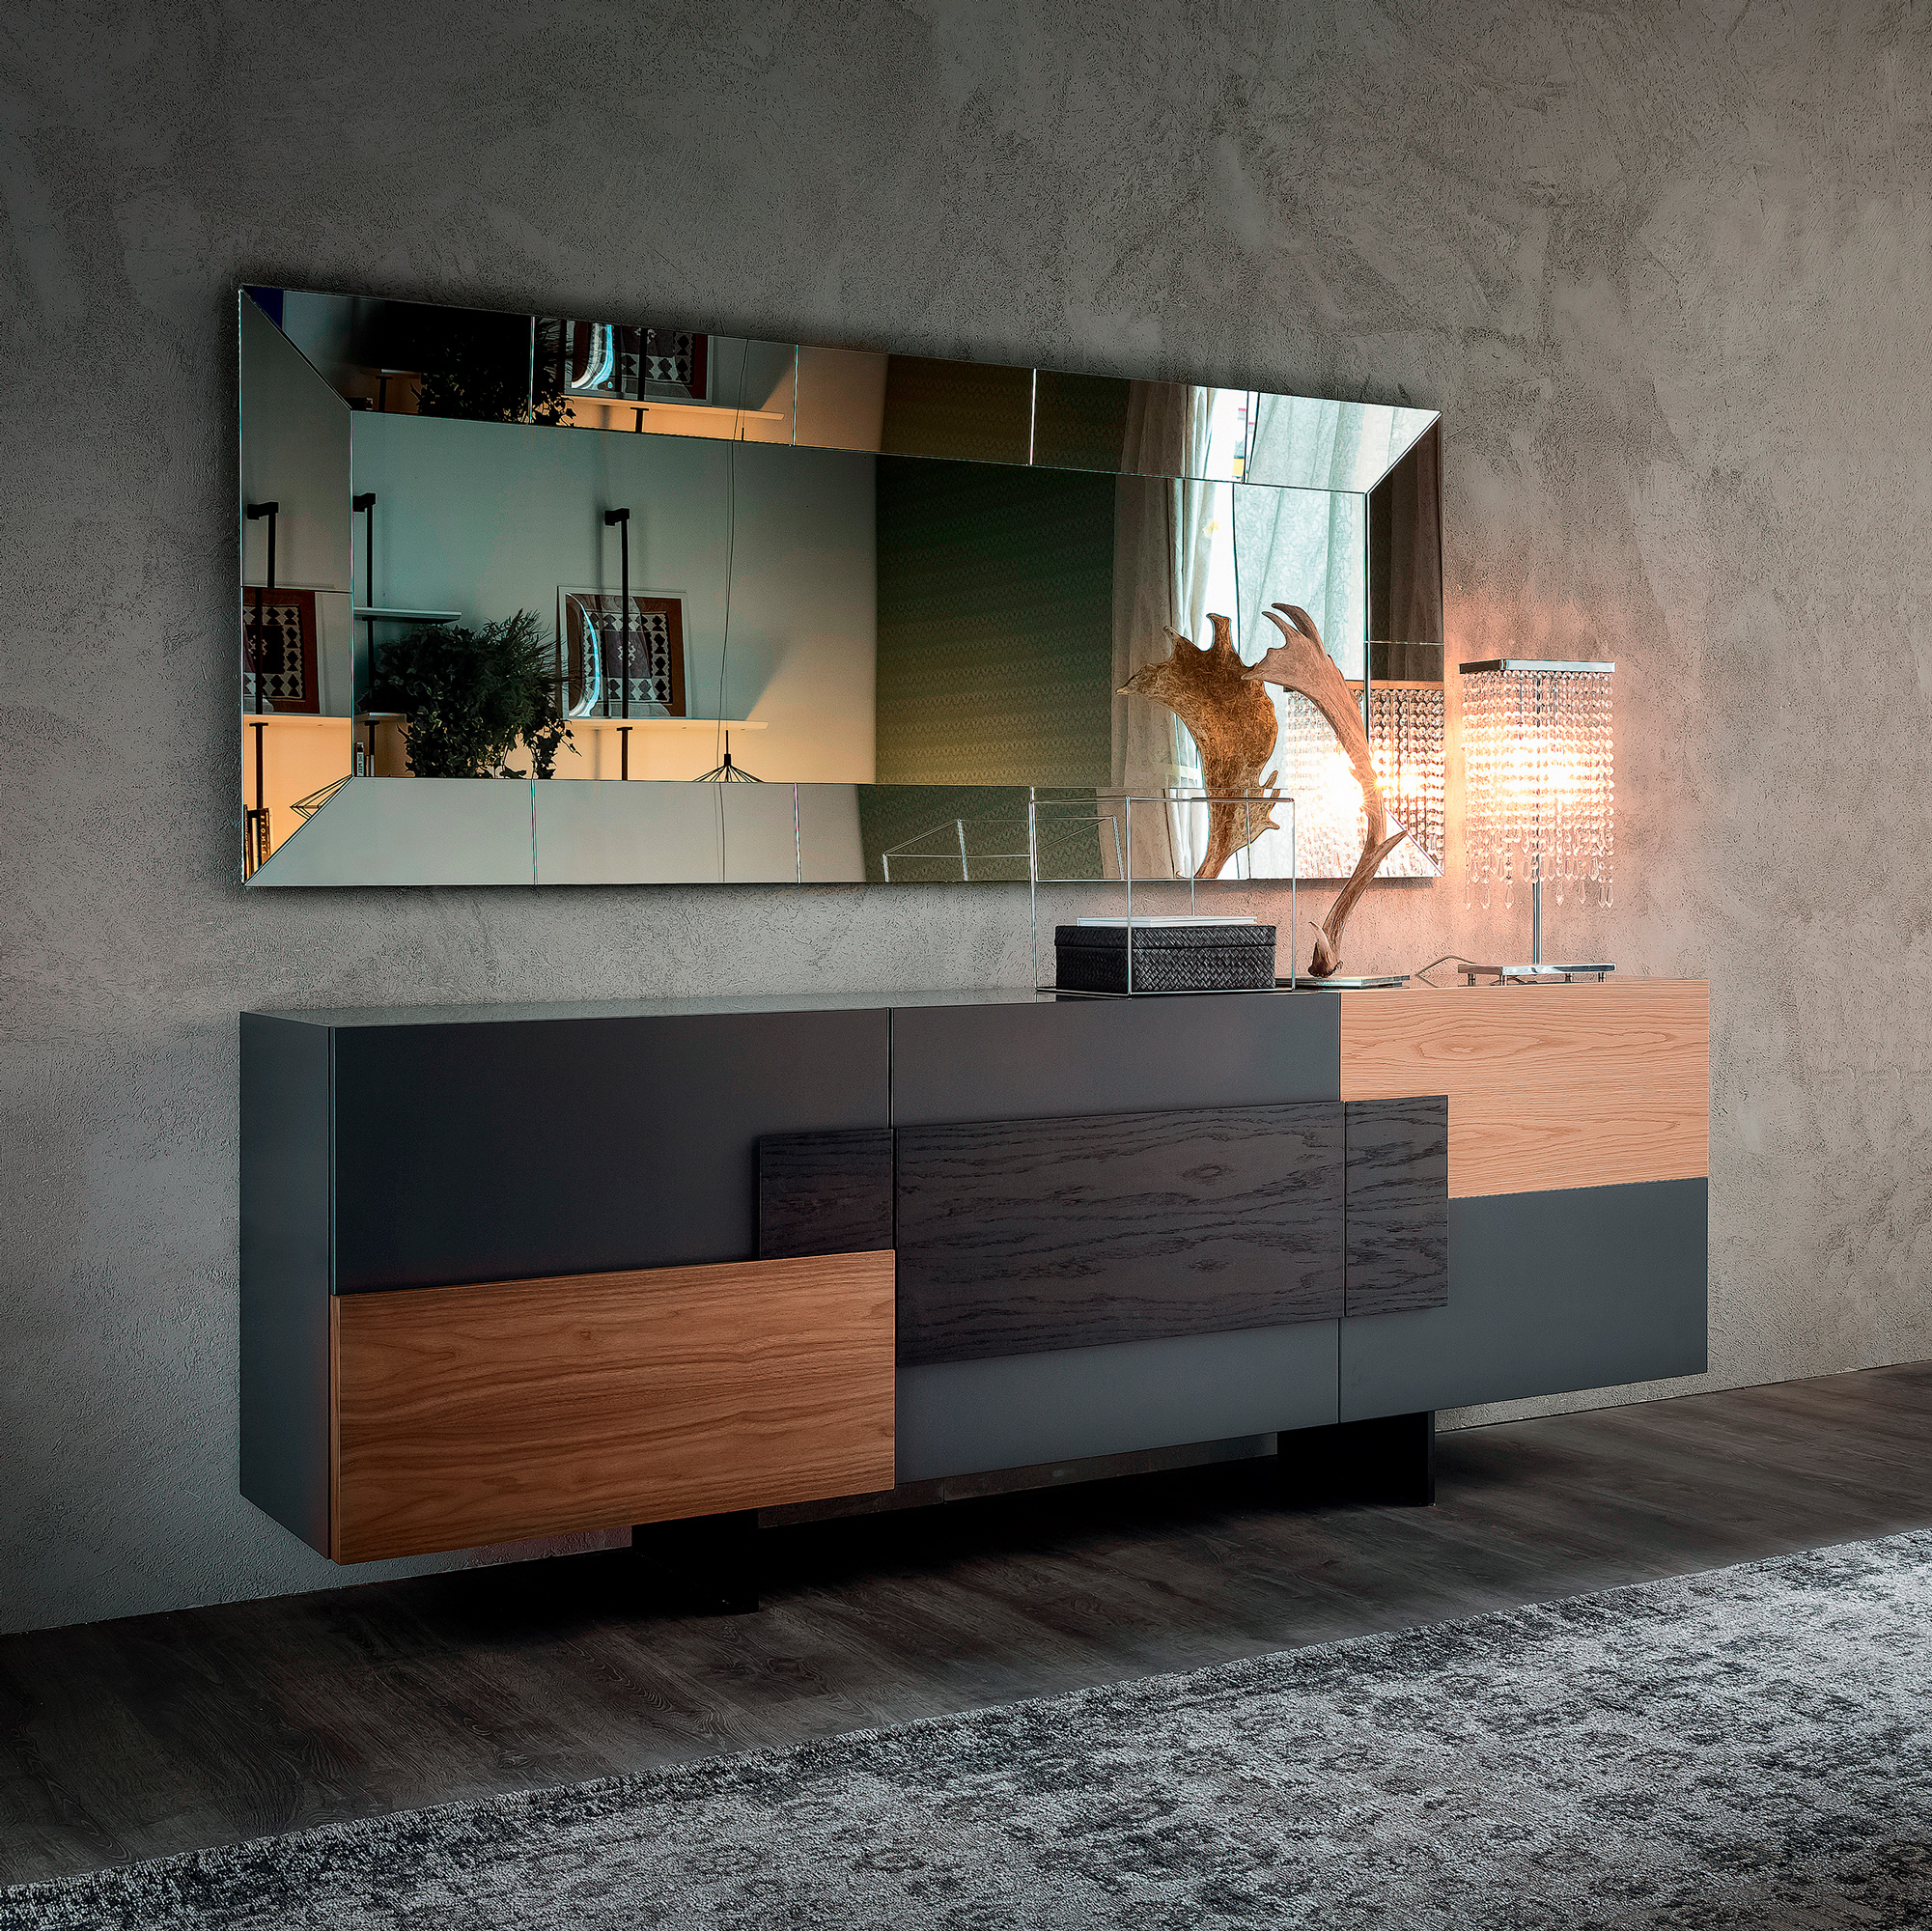 Torino high end contemporary sideboard italian designer for High end catalogs for home decor